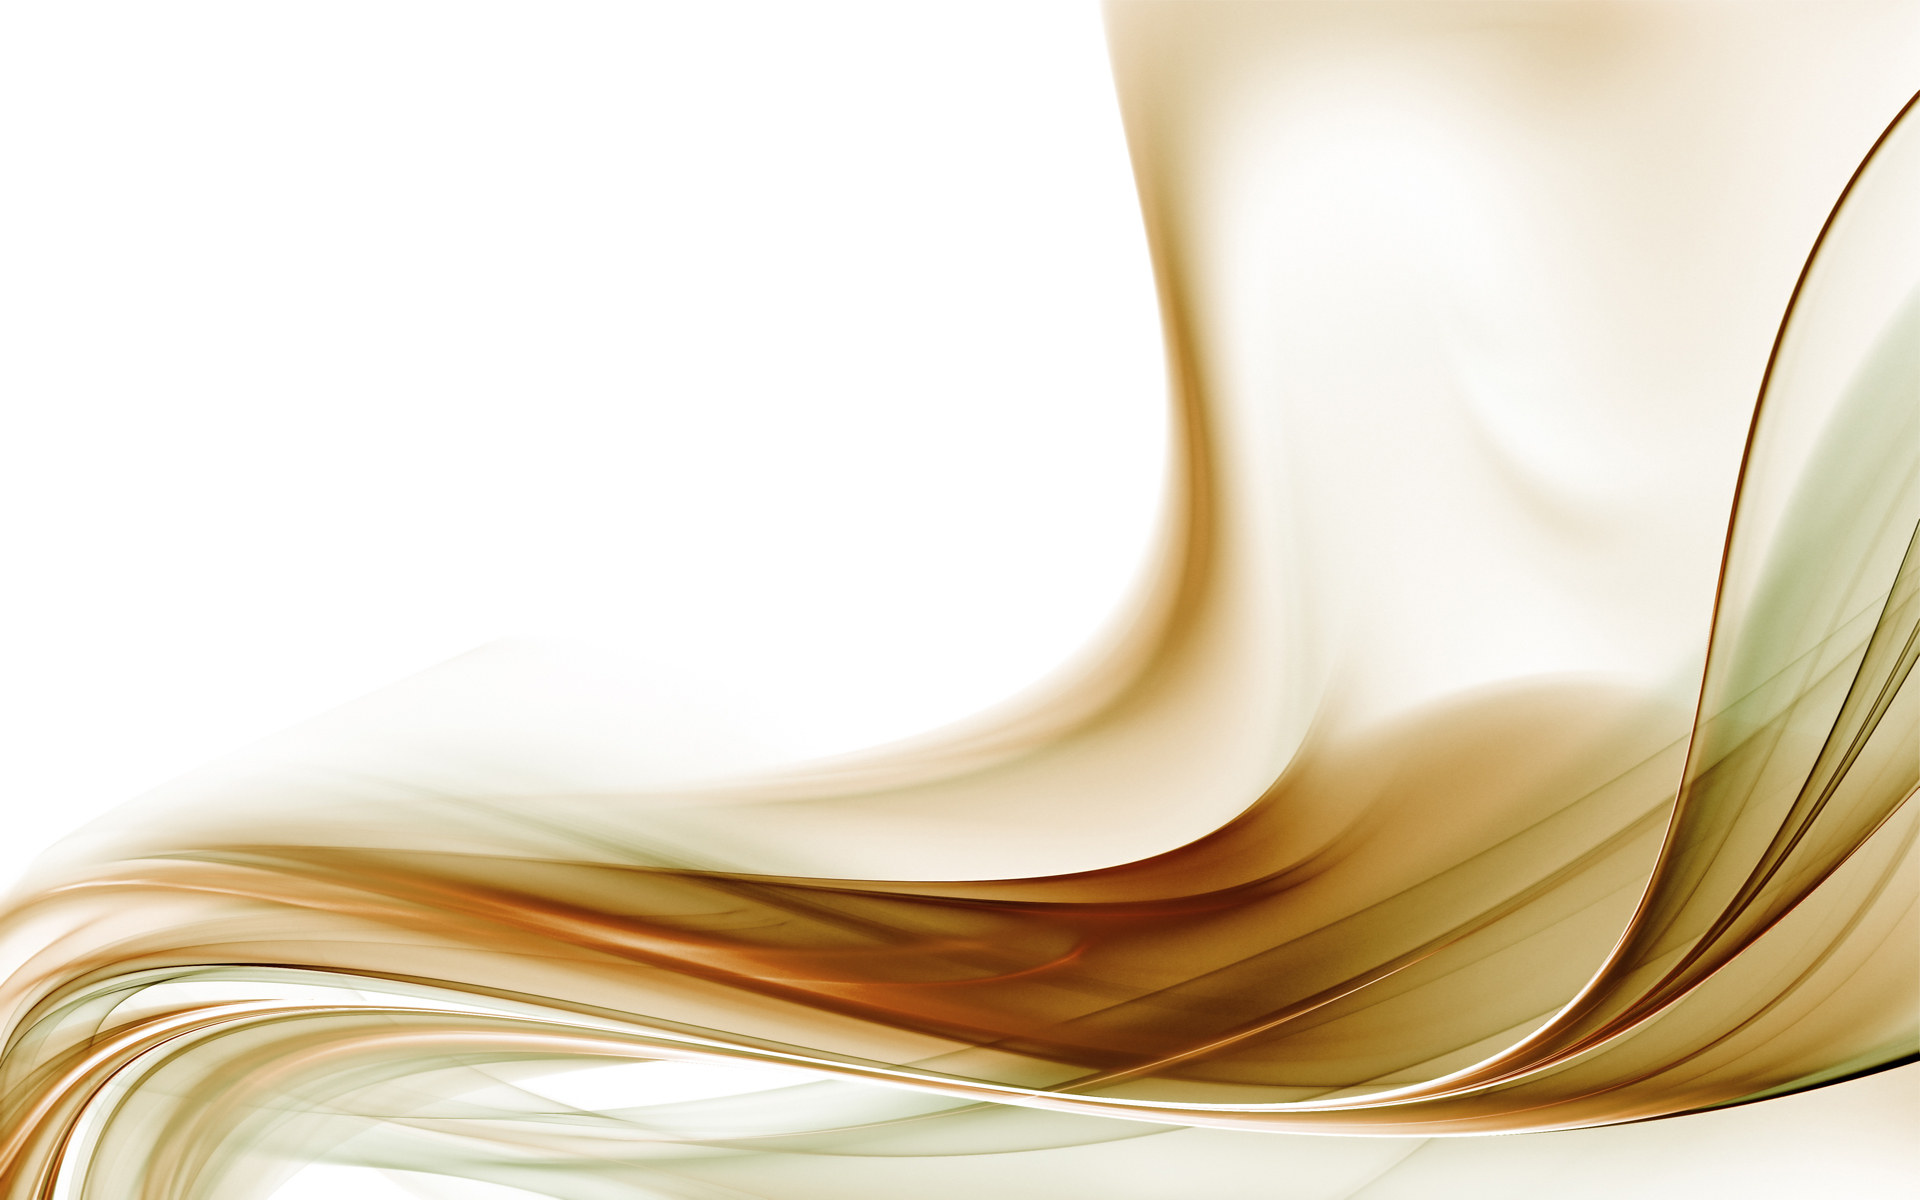 gold abstract wallpaper wch7i - photo #36